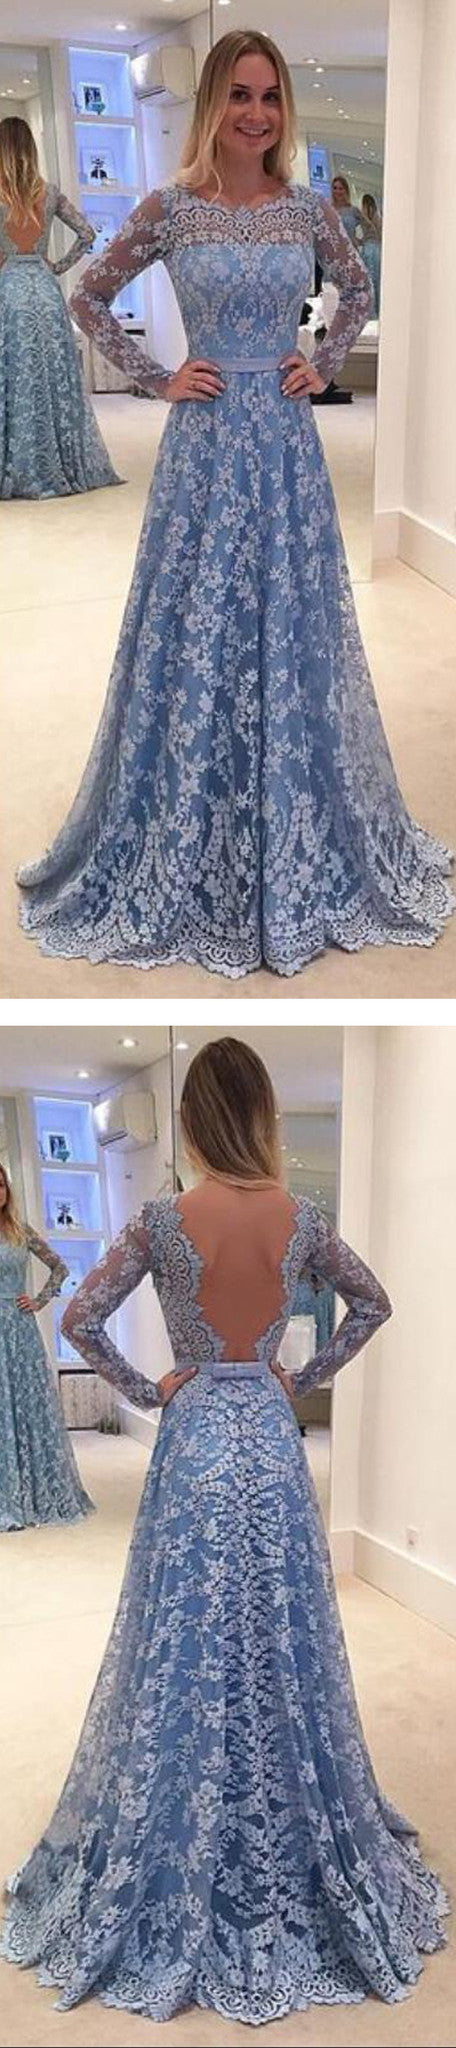 Elegant Long Sleeve Blue Full Lace A-line Open Back Cocktail Evening Party Vintage Prom Dresses,DB0182